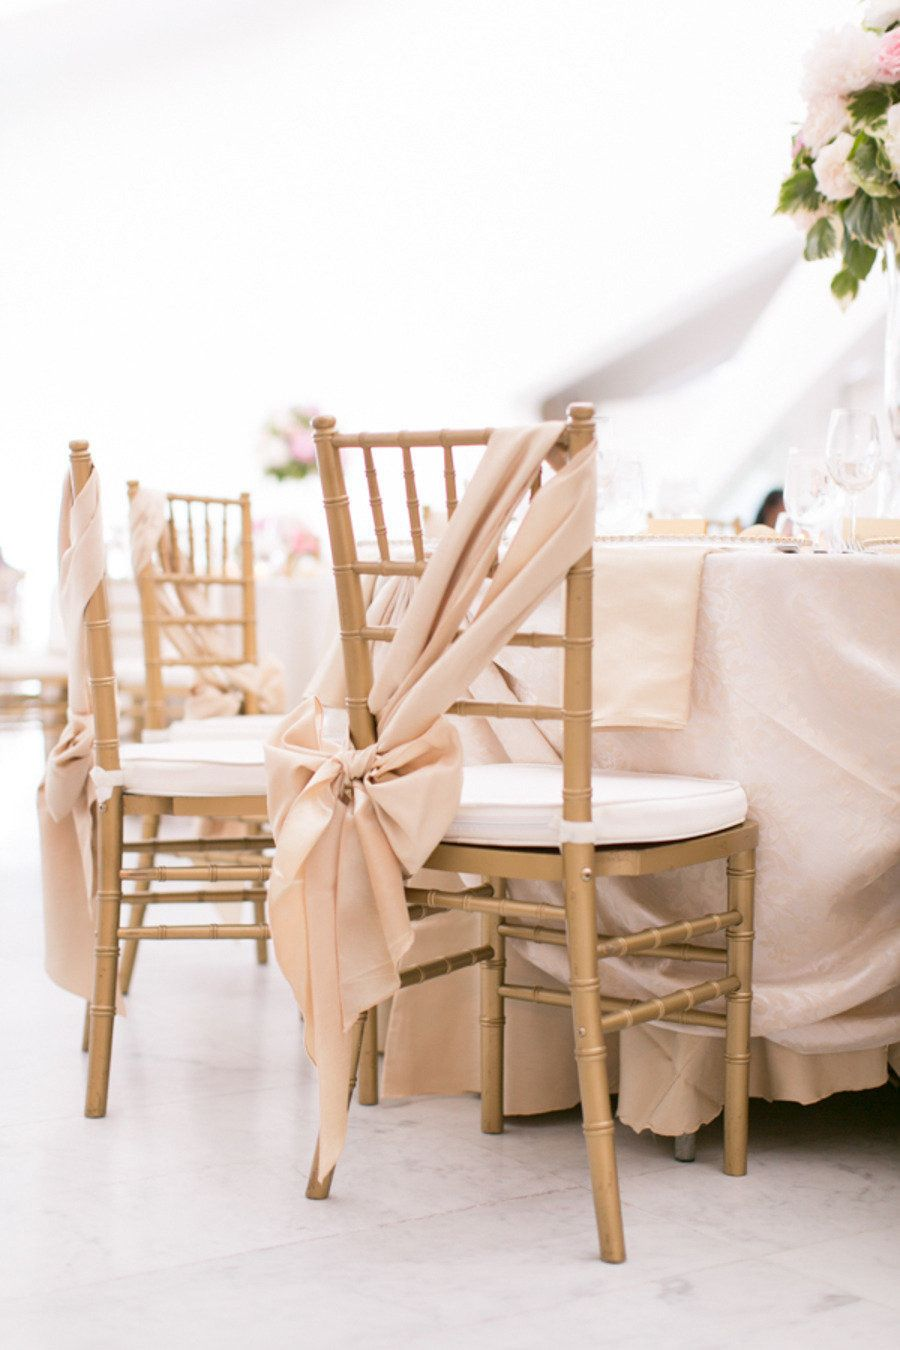 blush chair sashes uk rocker milwaukee wedding from heather cook elliott photography for just b g chairs or tuscan table only